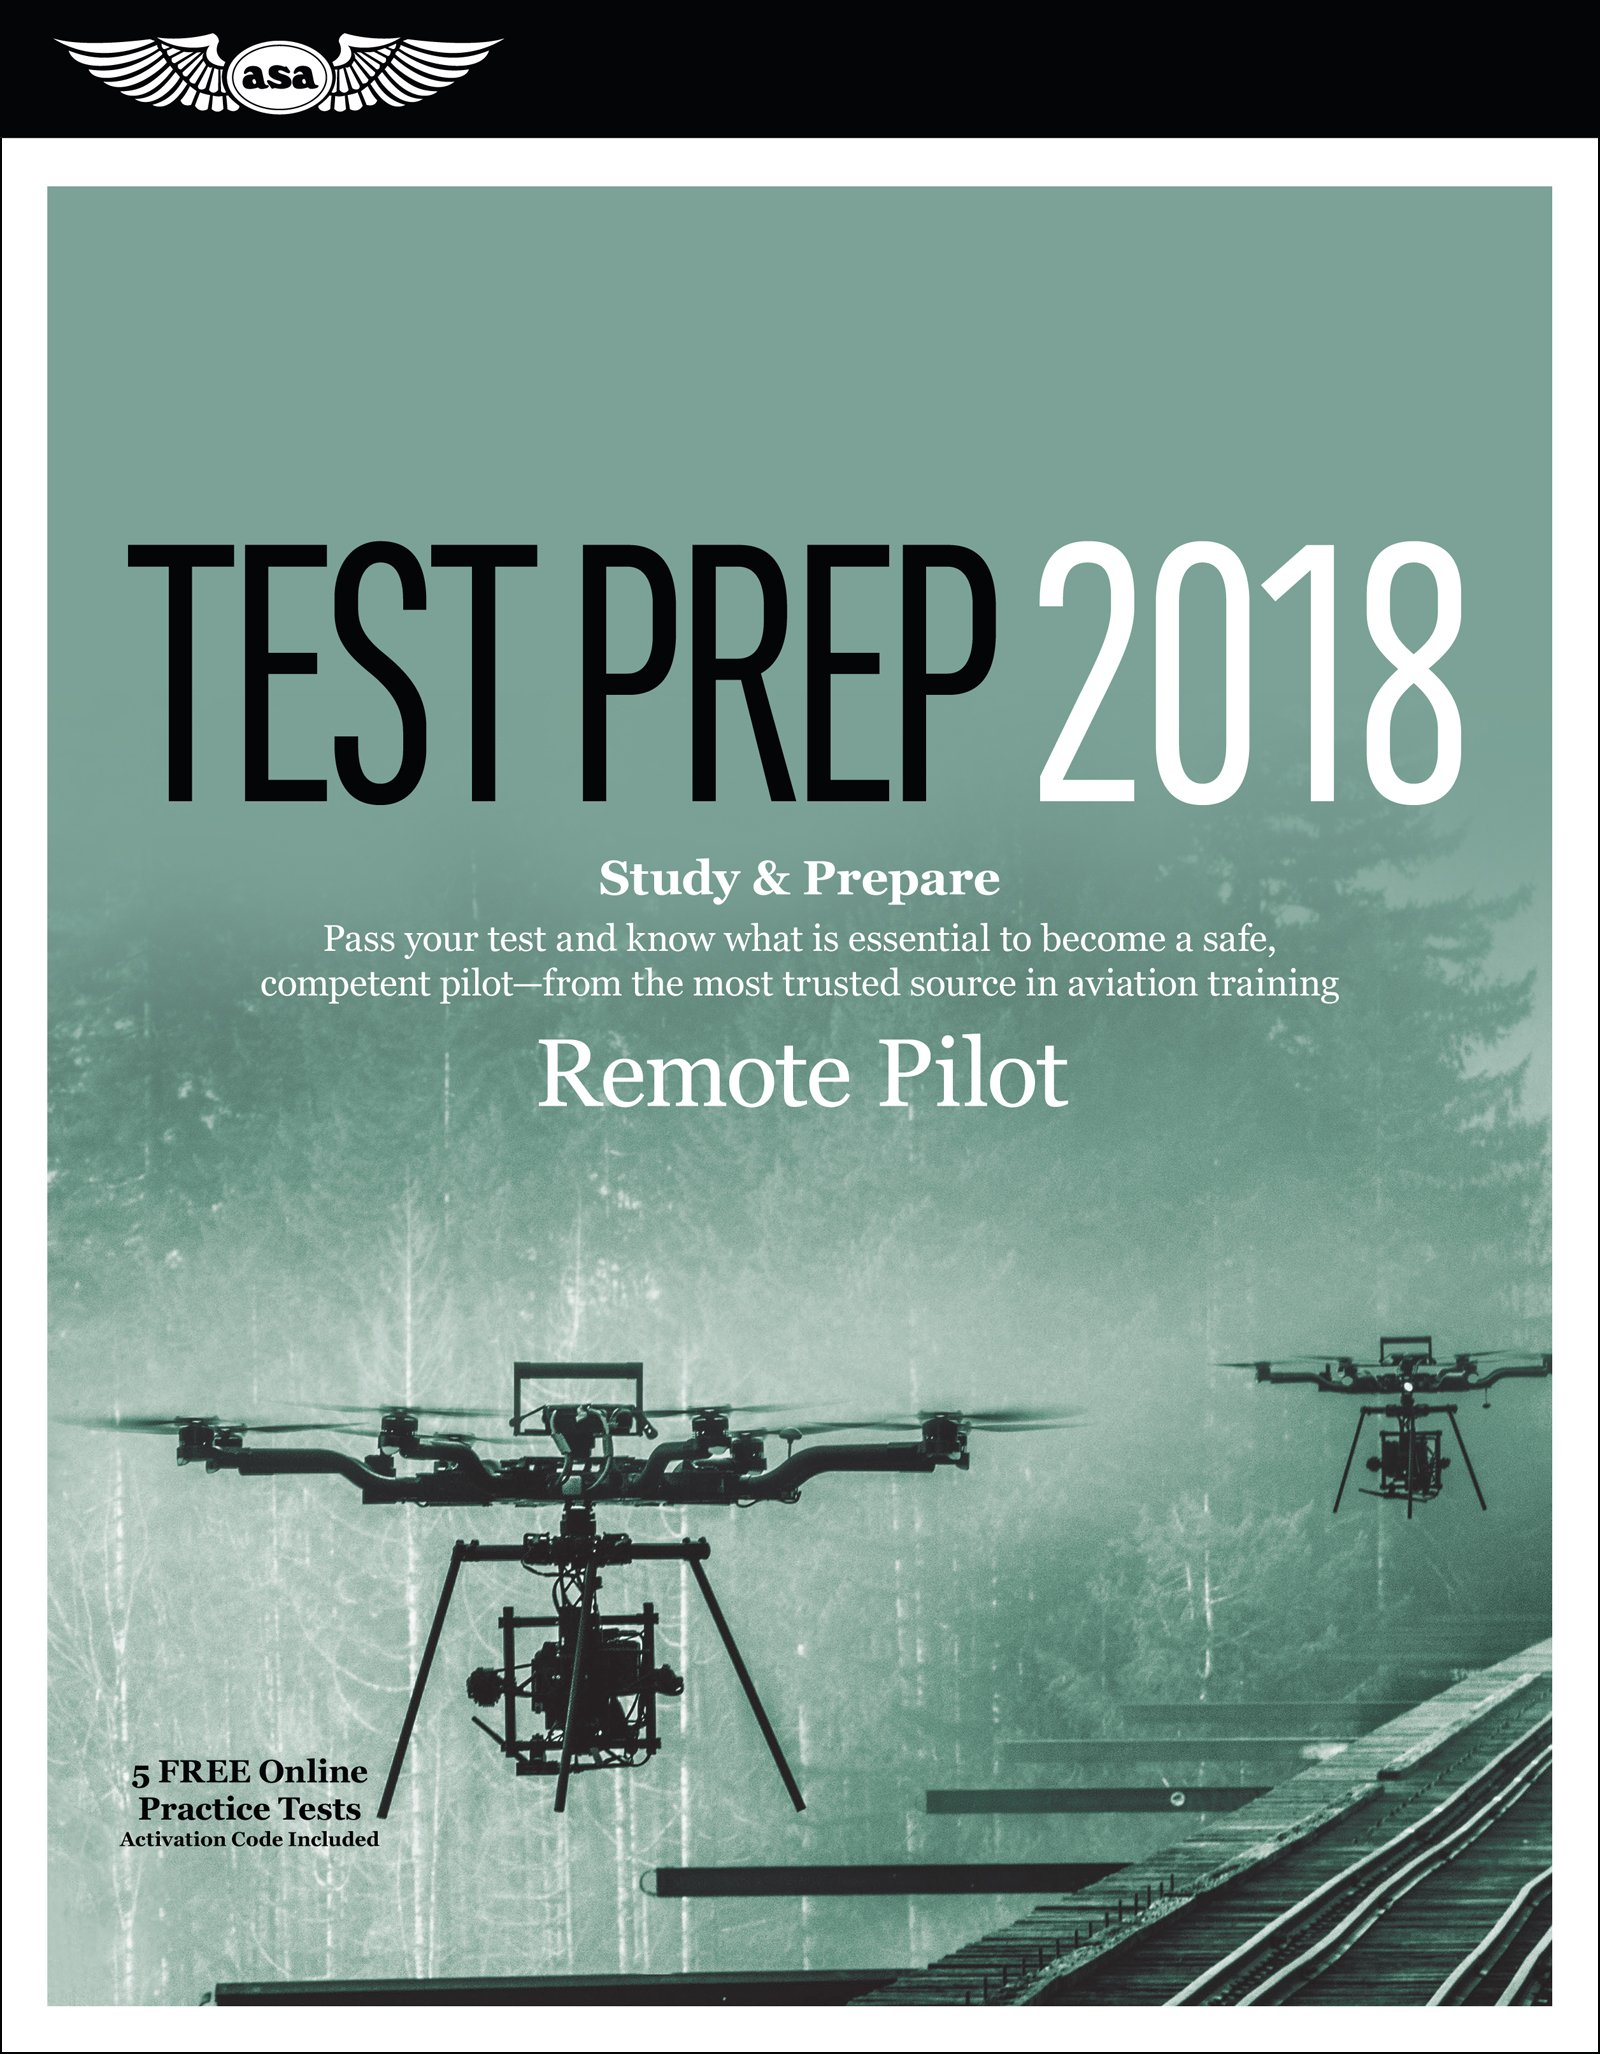 Remote pilot test prep 2018 study prepare pass your test and remote pilot test prep 2018 study prepare pass your test and know what is essential to safely operate an unmanned aircraft from the most trusted fandeluxe Images